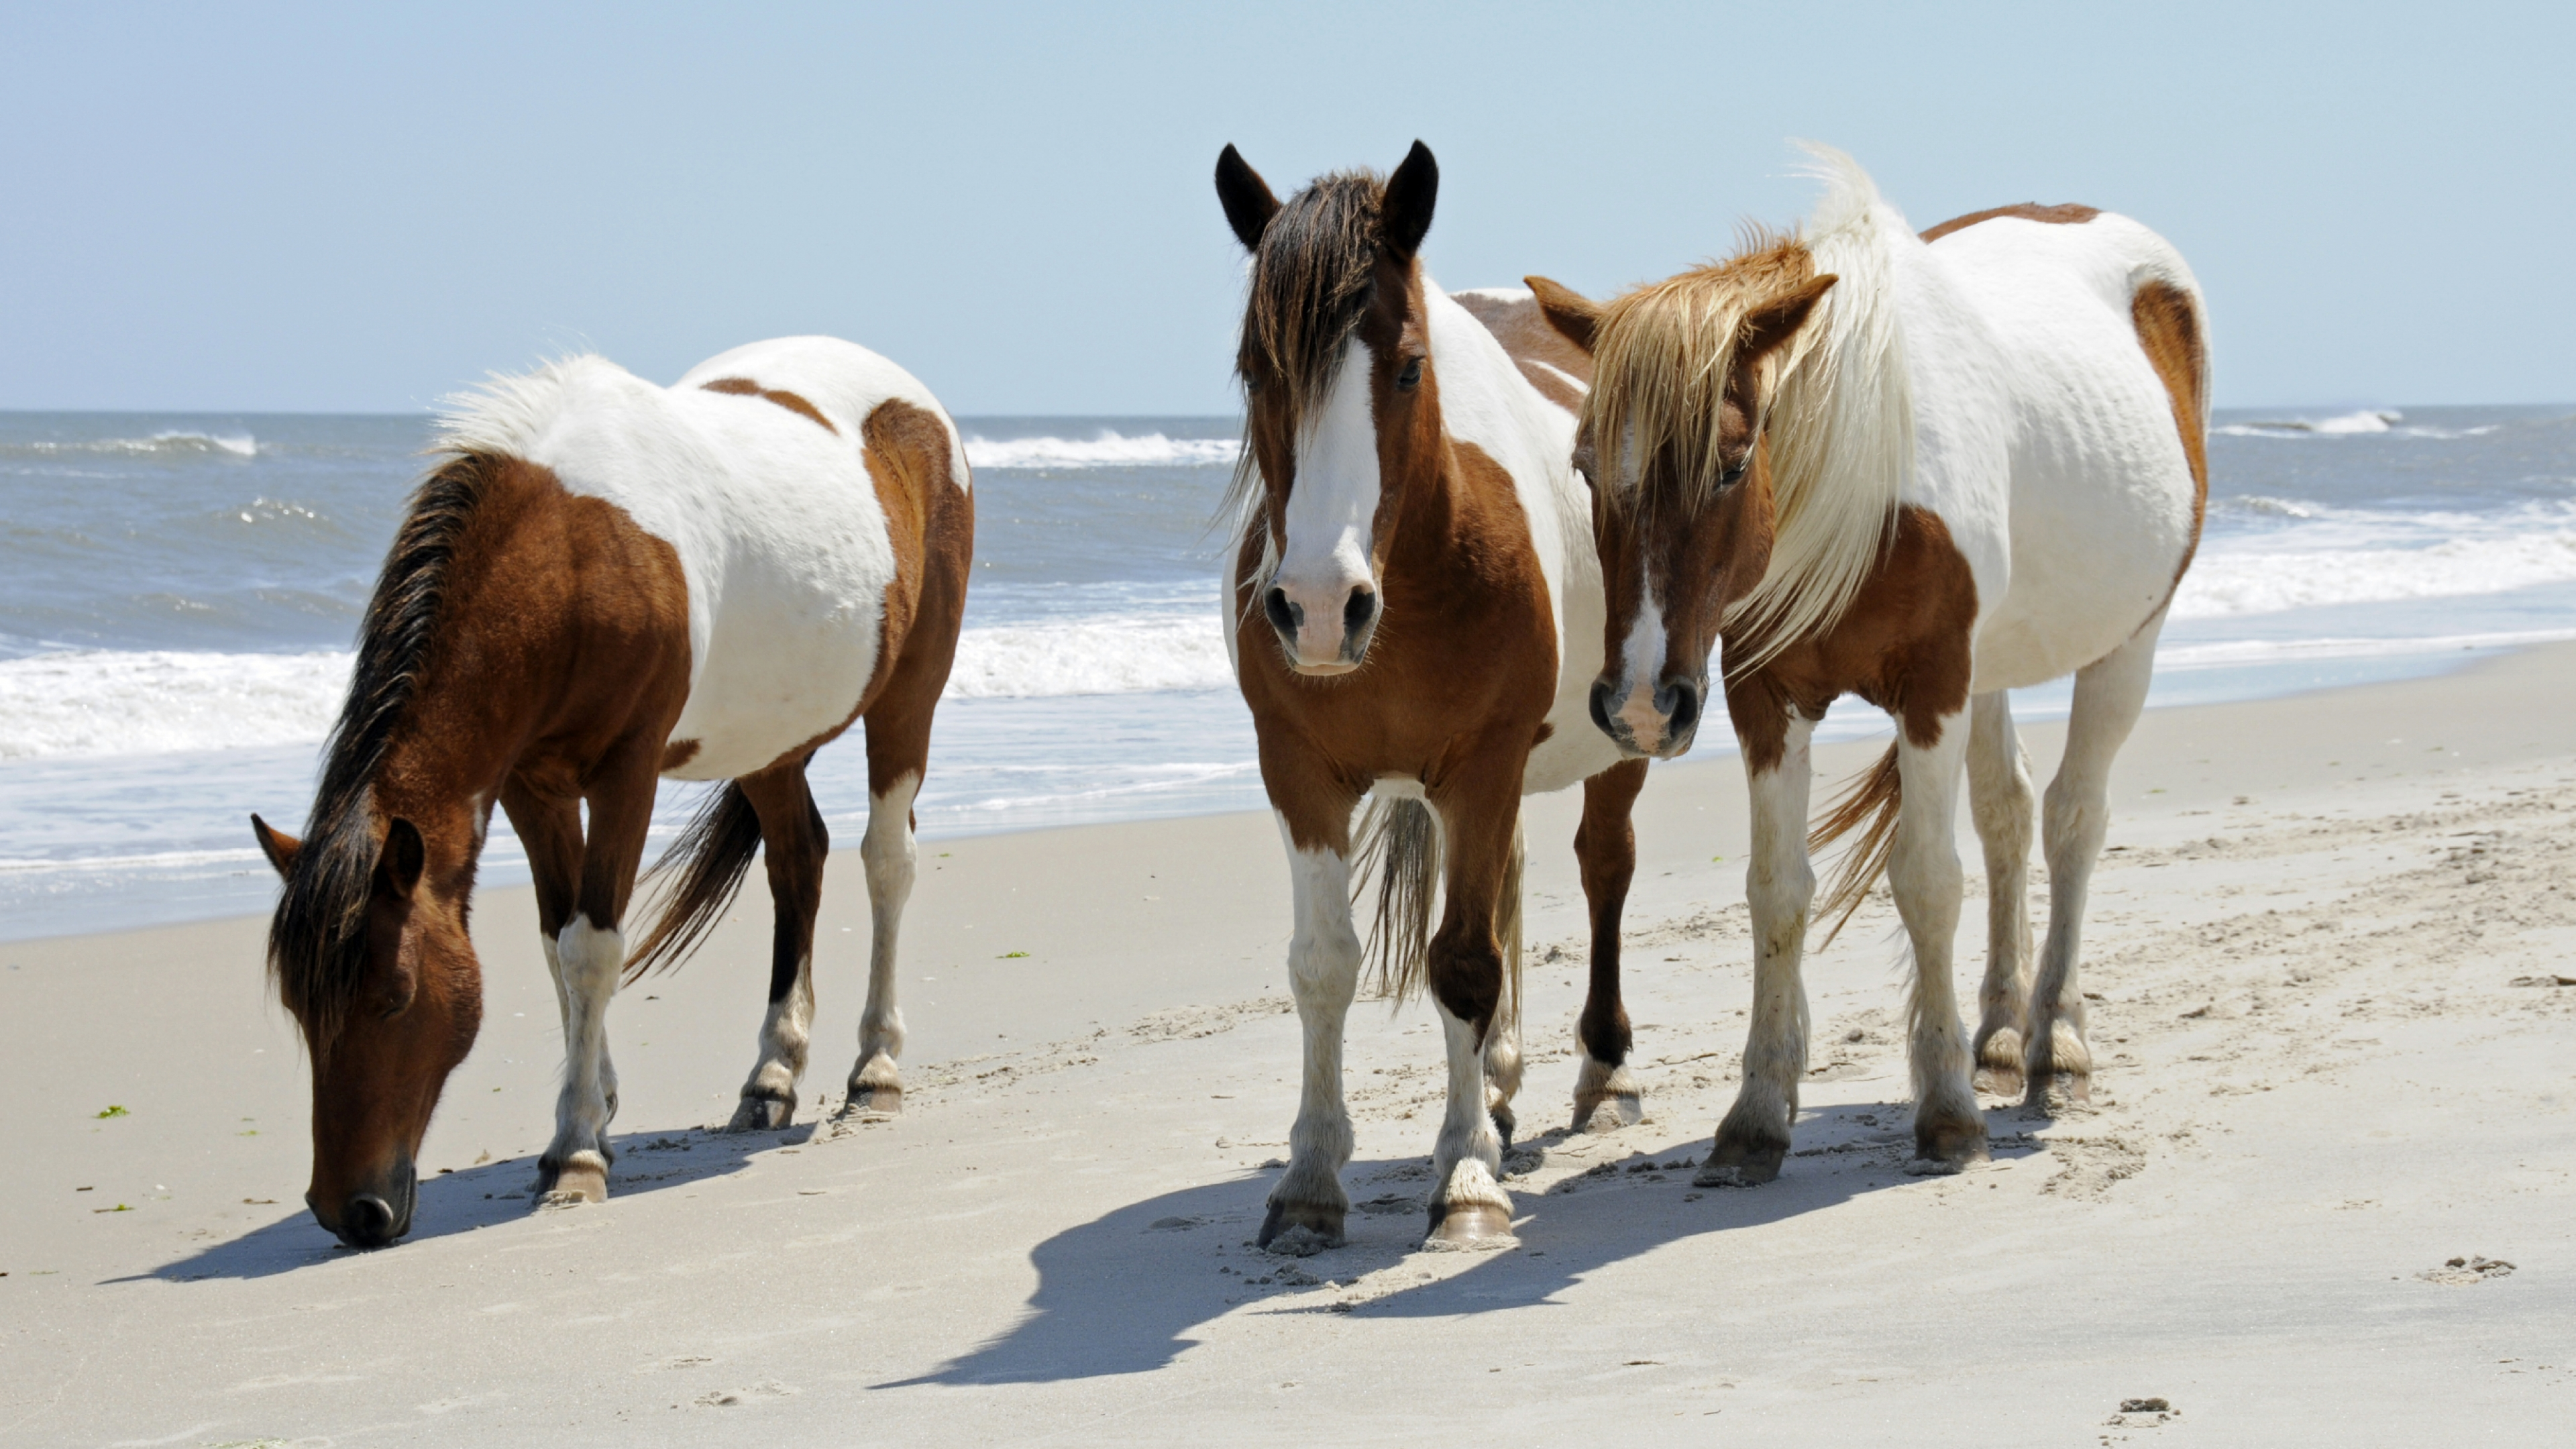 Three brown and white wild horses on the beach of Assateague Island